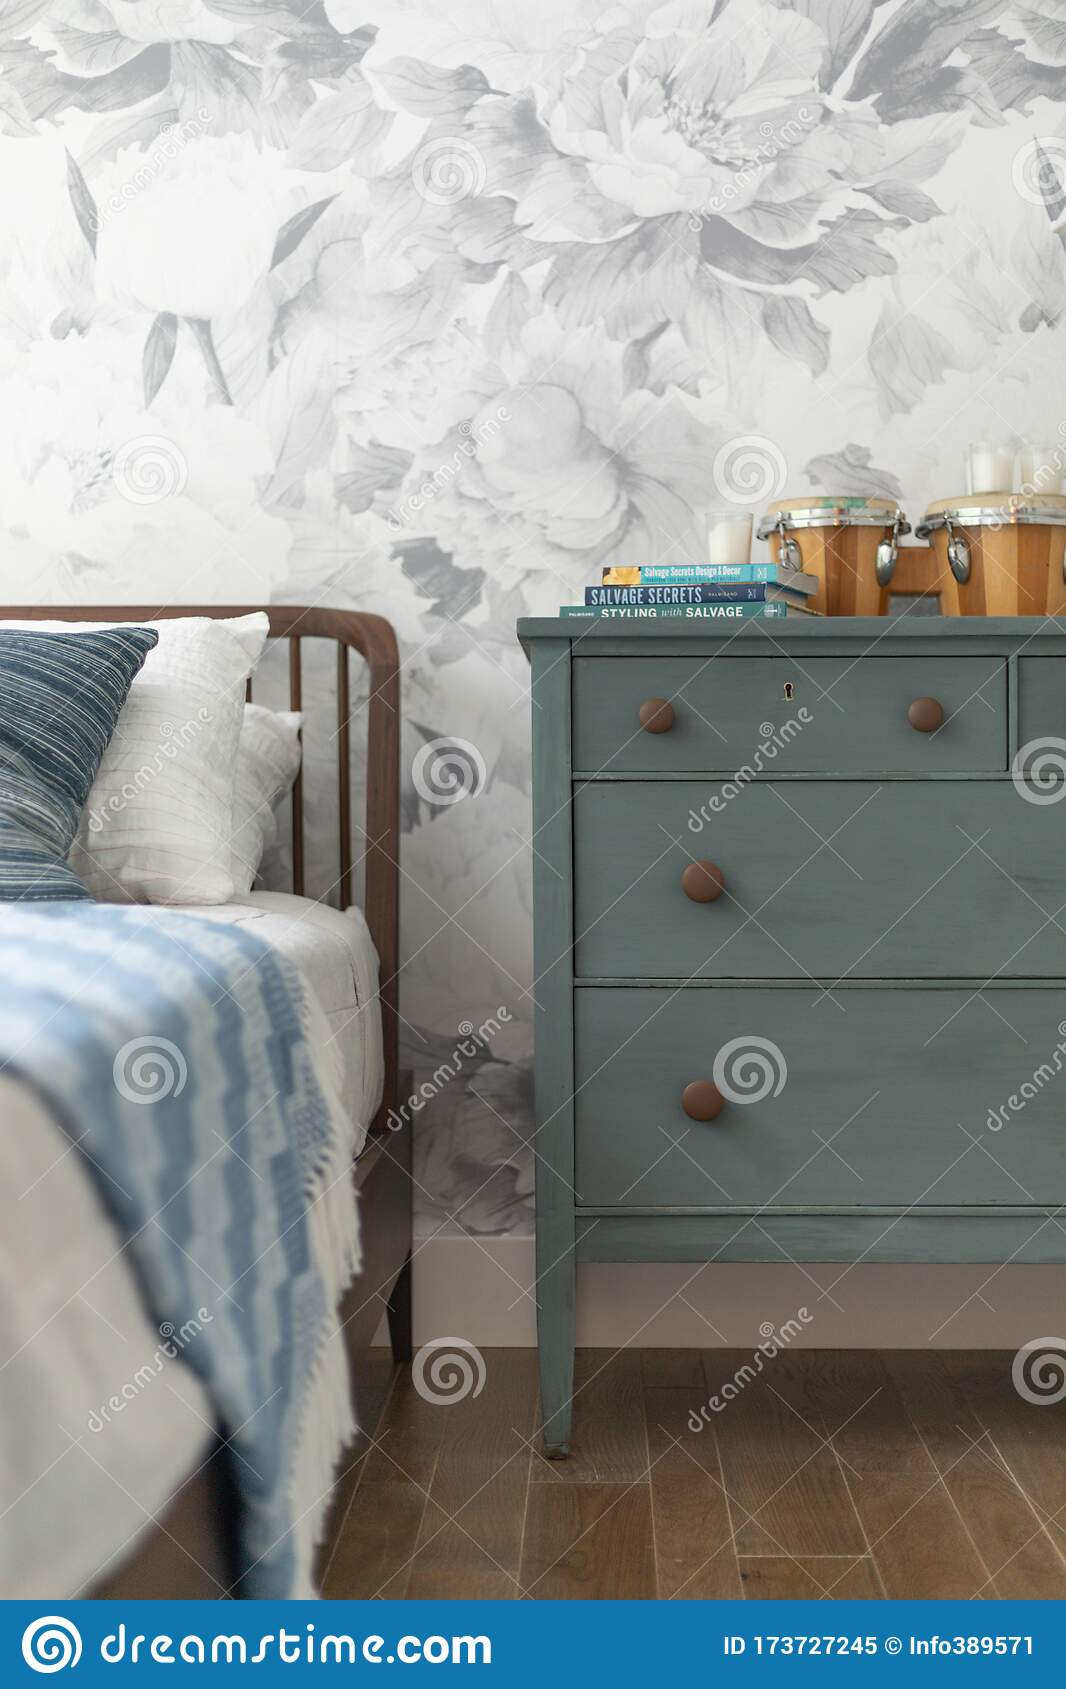 1 858 Blue Dresser Photos Free Royalty Free Stock Photos From Dreamstime